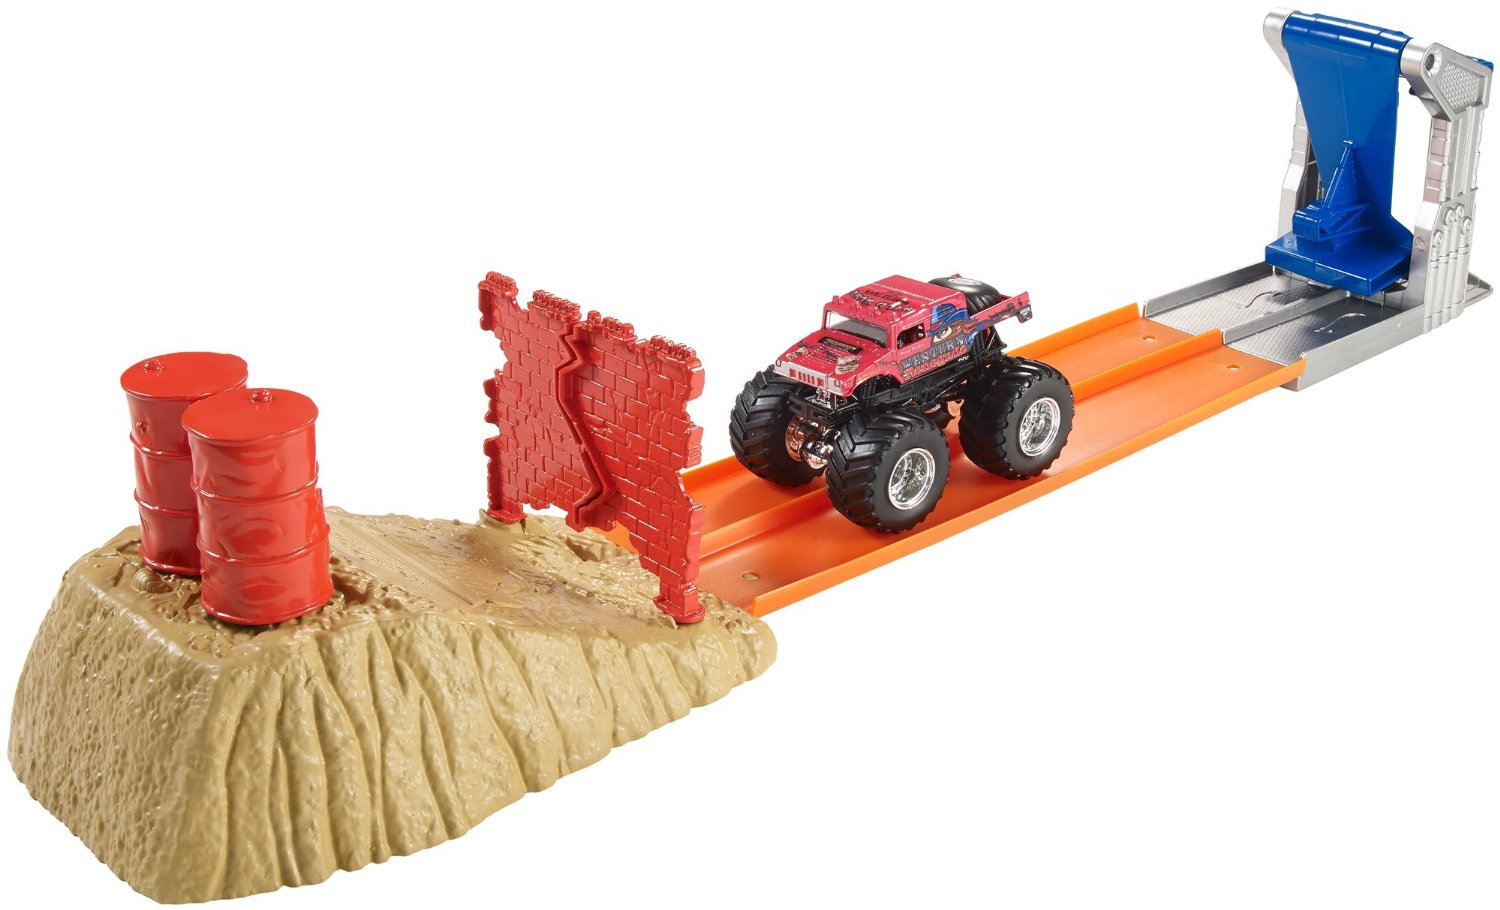 Hot Wheels Monster Jam Brick Wall Breakdown by Mattel